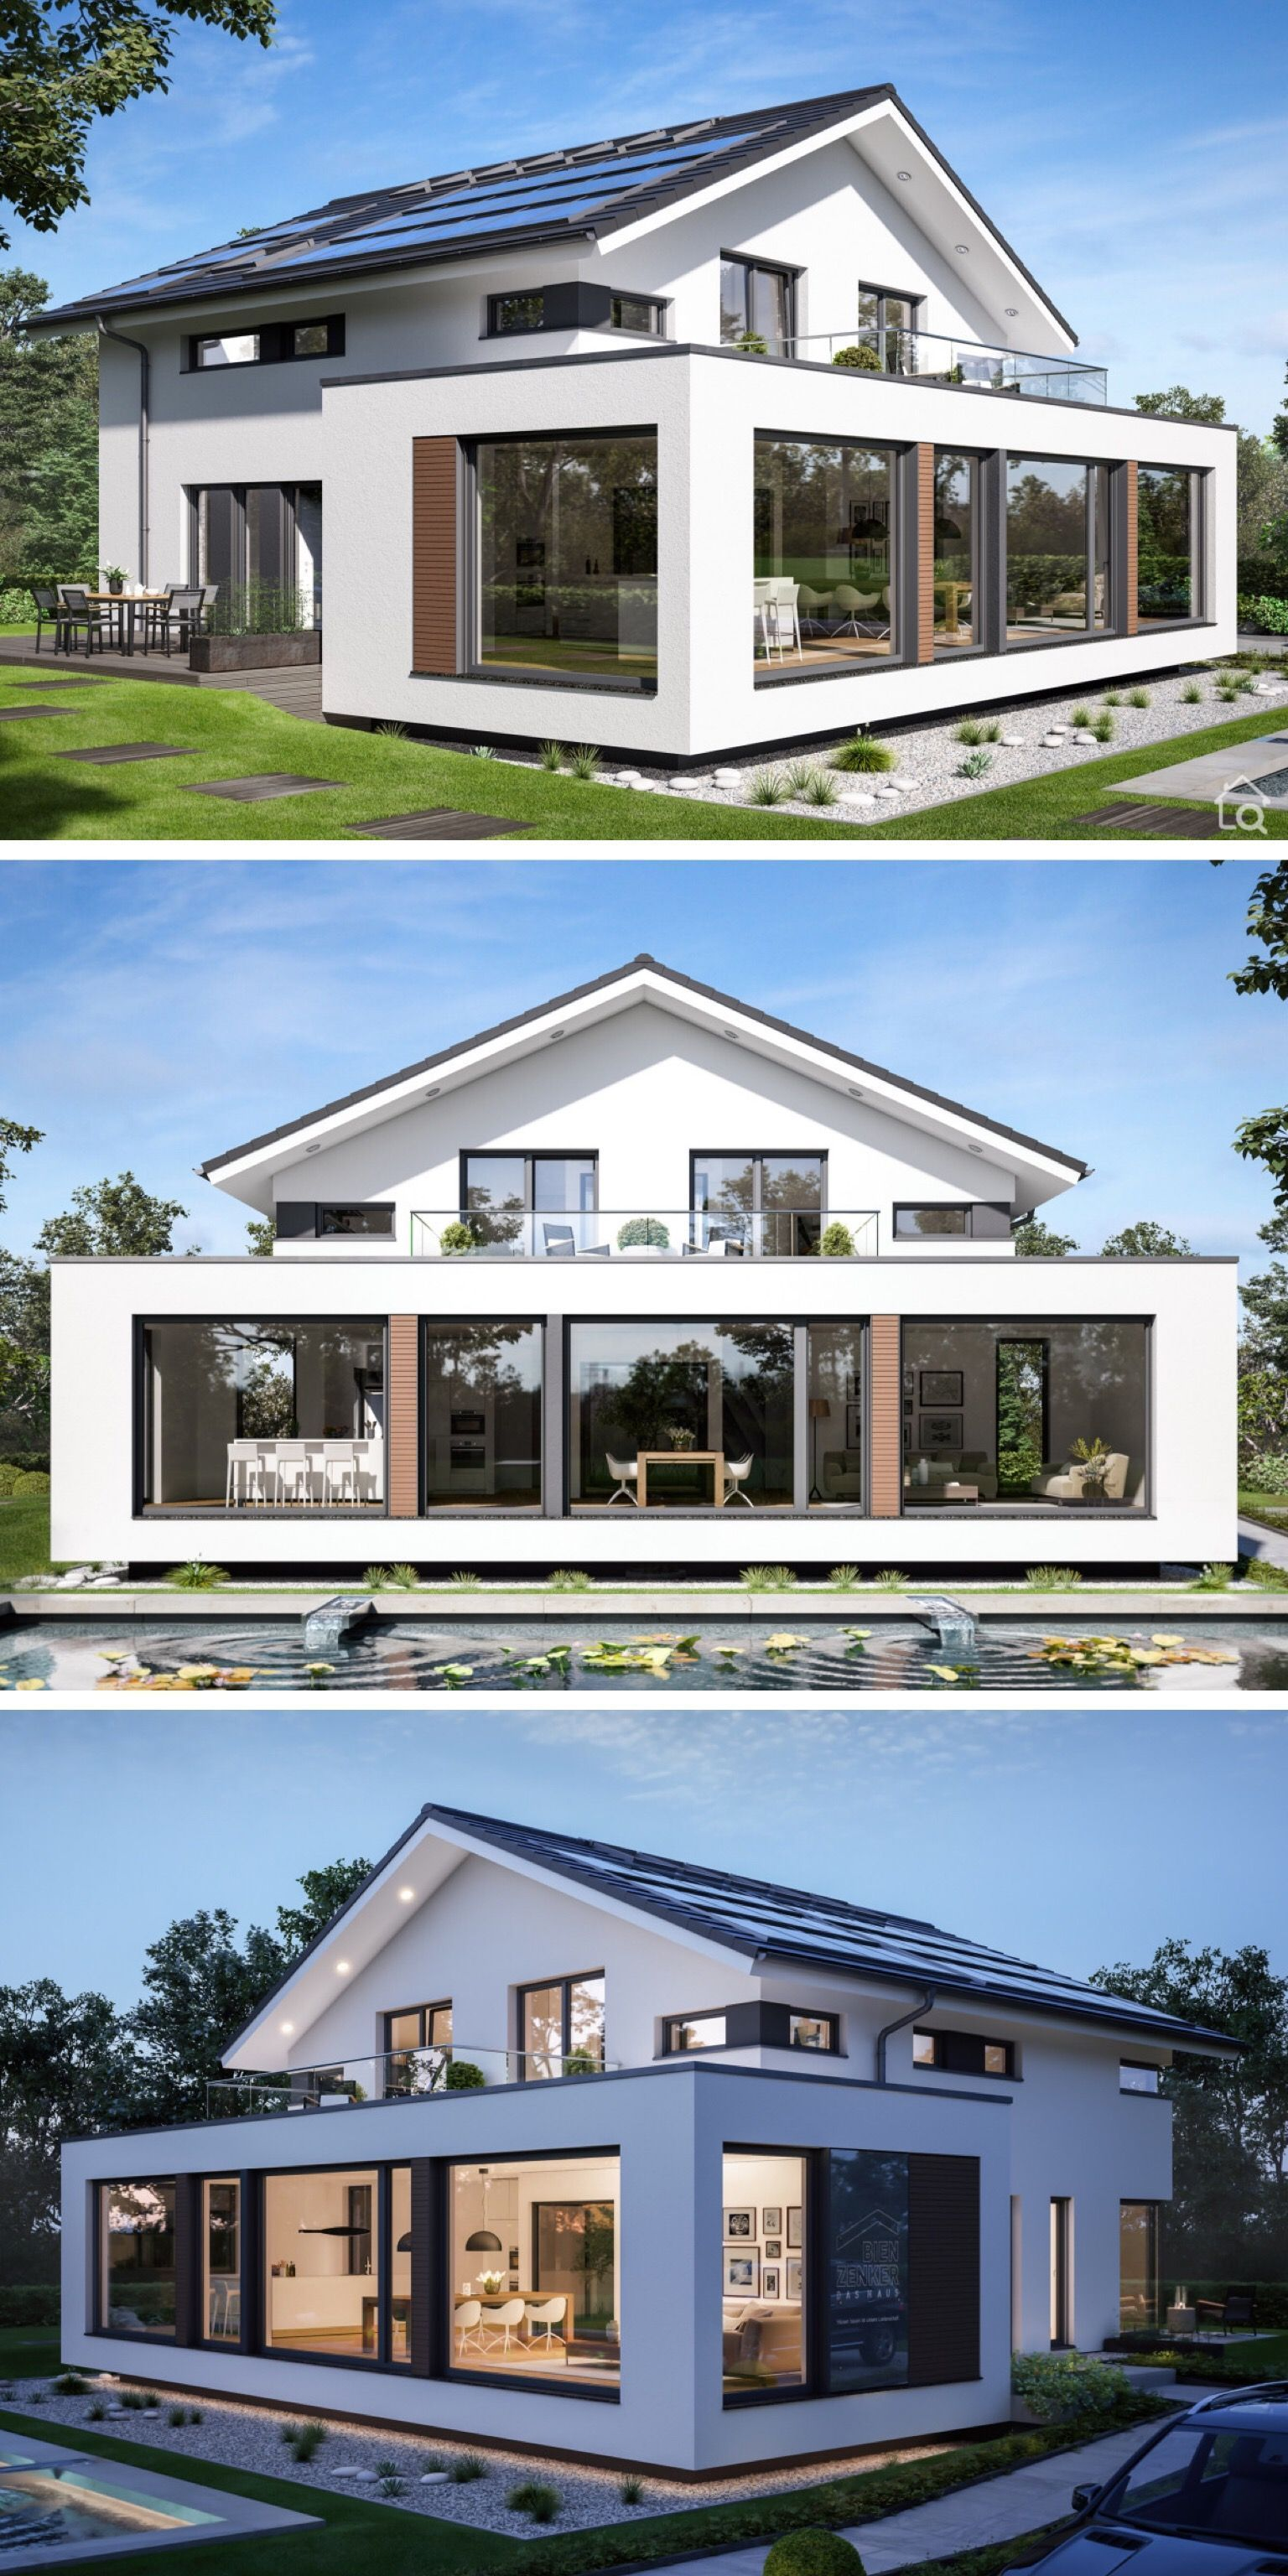 Modern House Architecture Design With Gable Roof Contemporary European Minimalist St In 2020 House Architecture Styles House Architecture Design House Extension Design